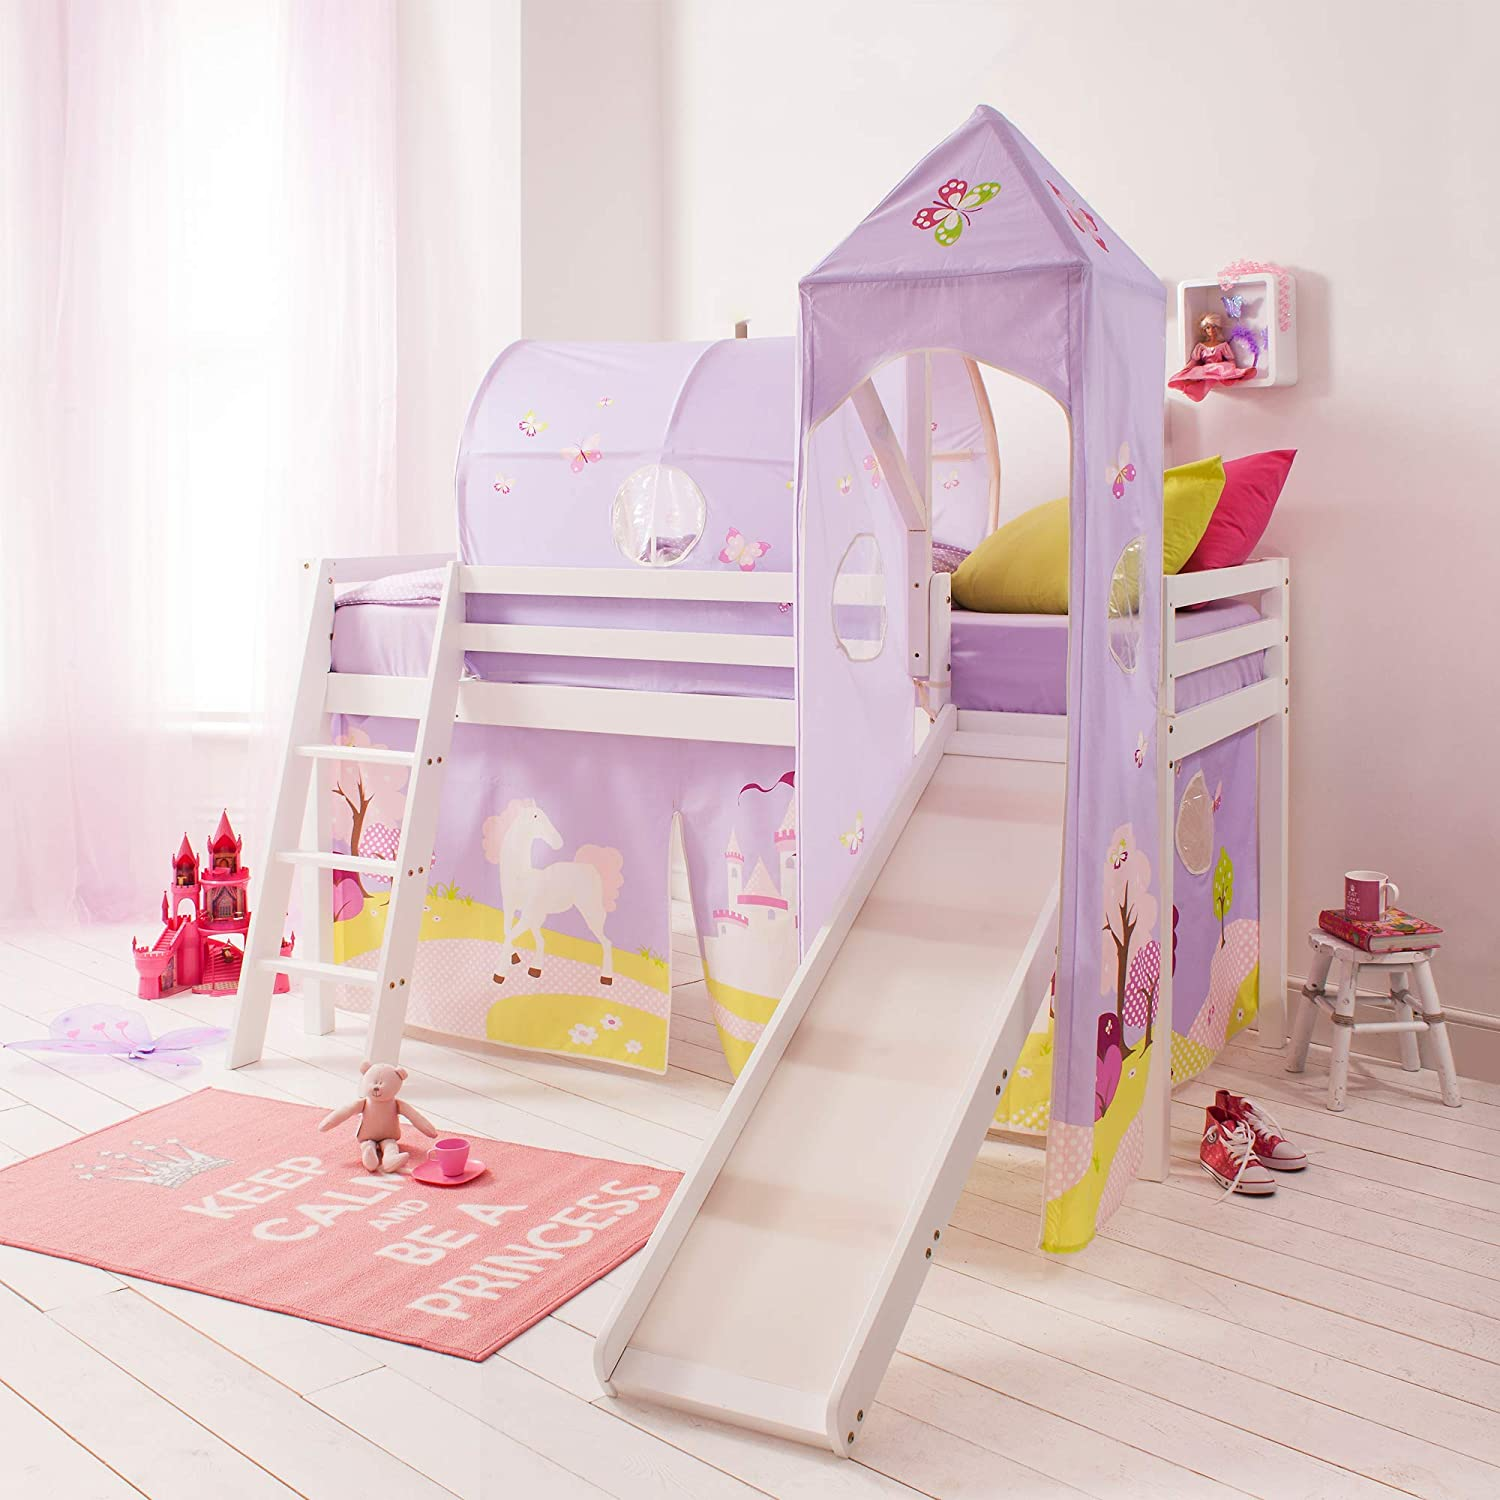 4a2b5b1f7f68 Noa and Nani - Midsleeper Cabin Bed with Slide and Princess ...